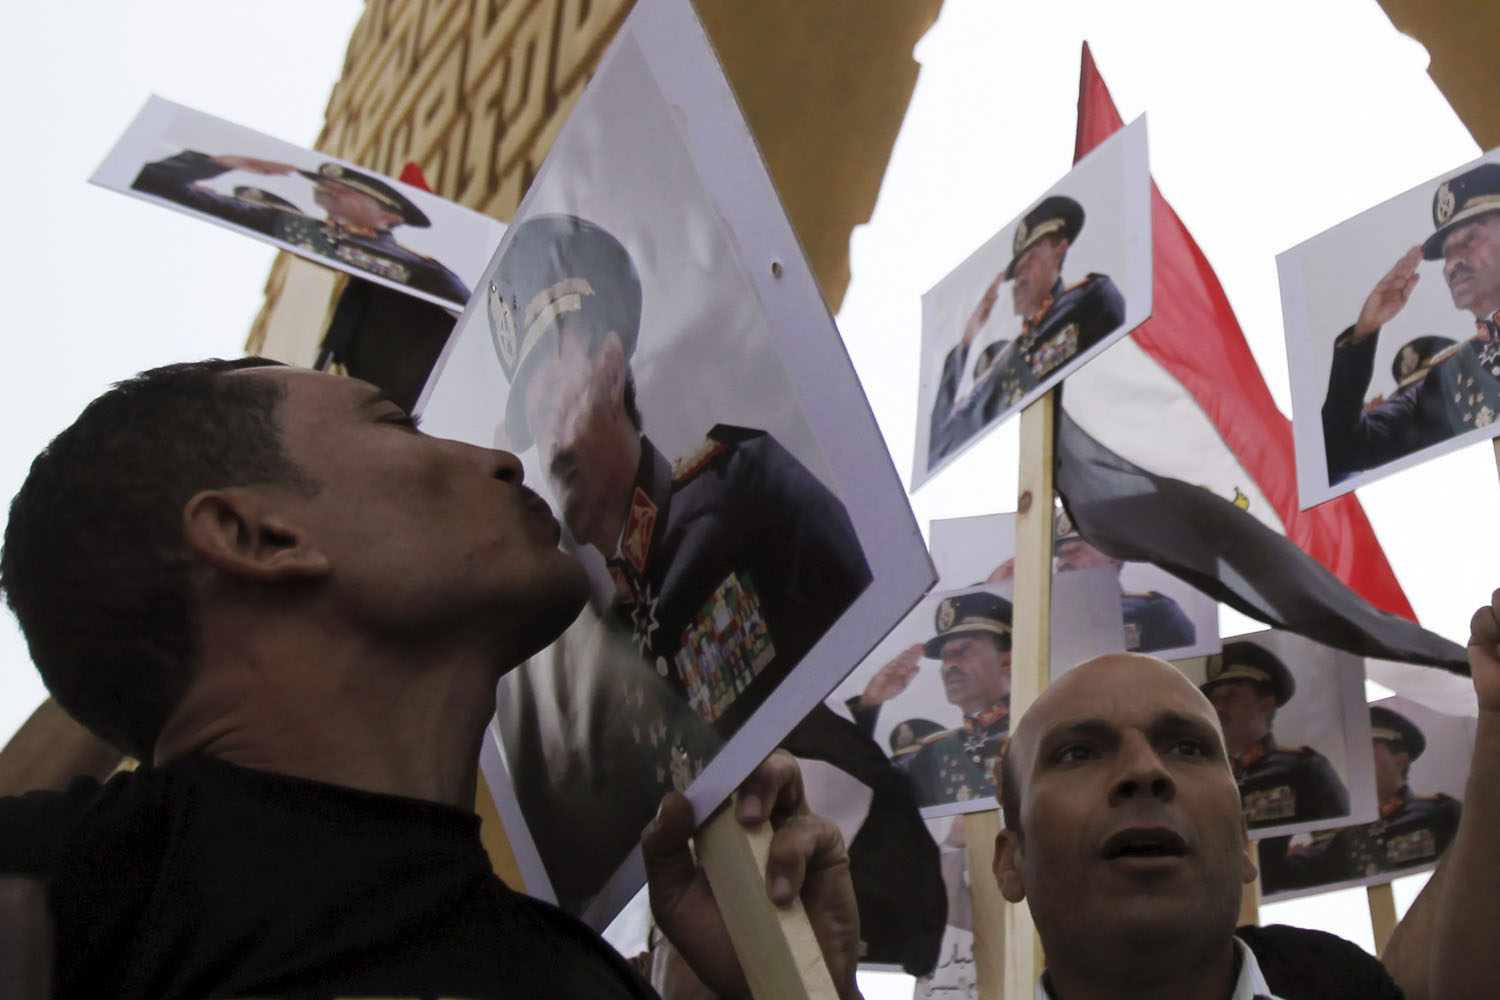 Oct. 6, 2013. A man kisses a poster of late Egyptian President Anwar Sadat as supporters of army shout slogans against ousted Islamist President Mohamed Mursi and members of the Muslim Brotherhood at Sadat's tomb, during the 40th anniversary of Egypt's attack on Israeli forces during the 1973 war, at Cairo's Nasr City district.